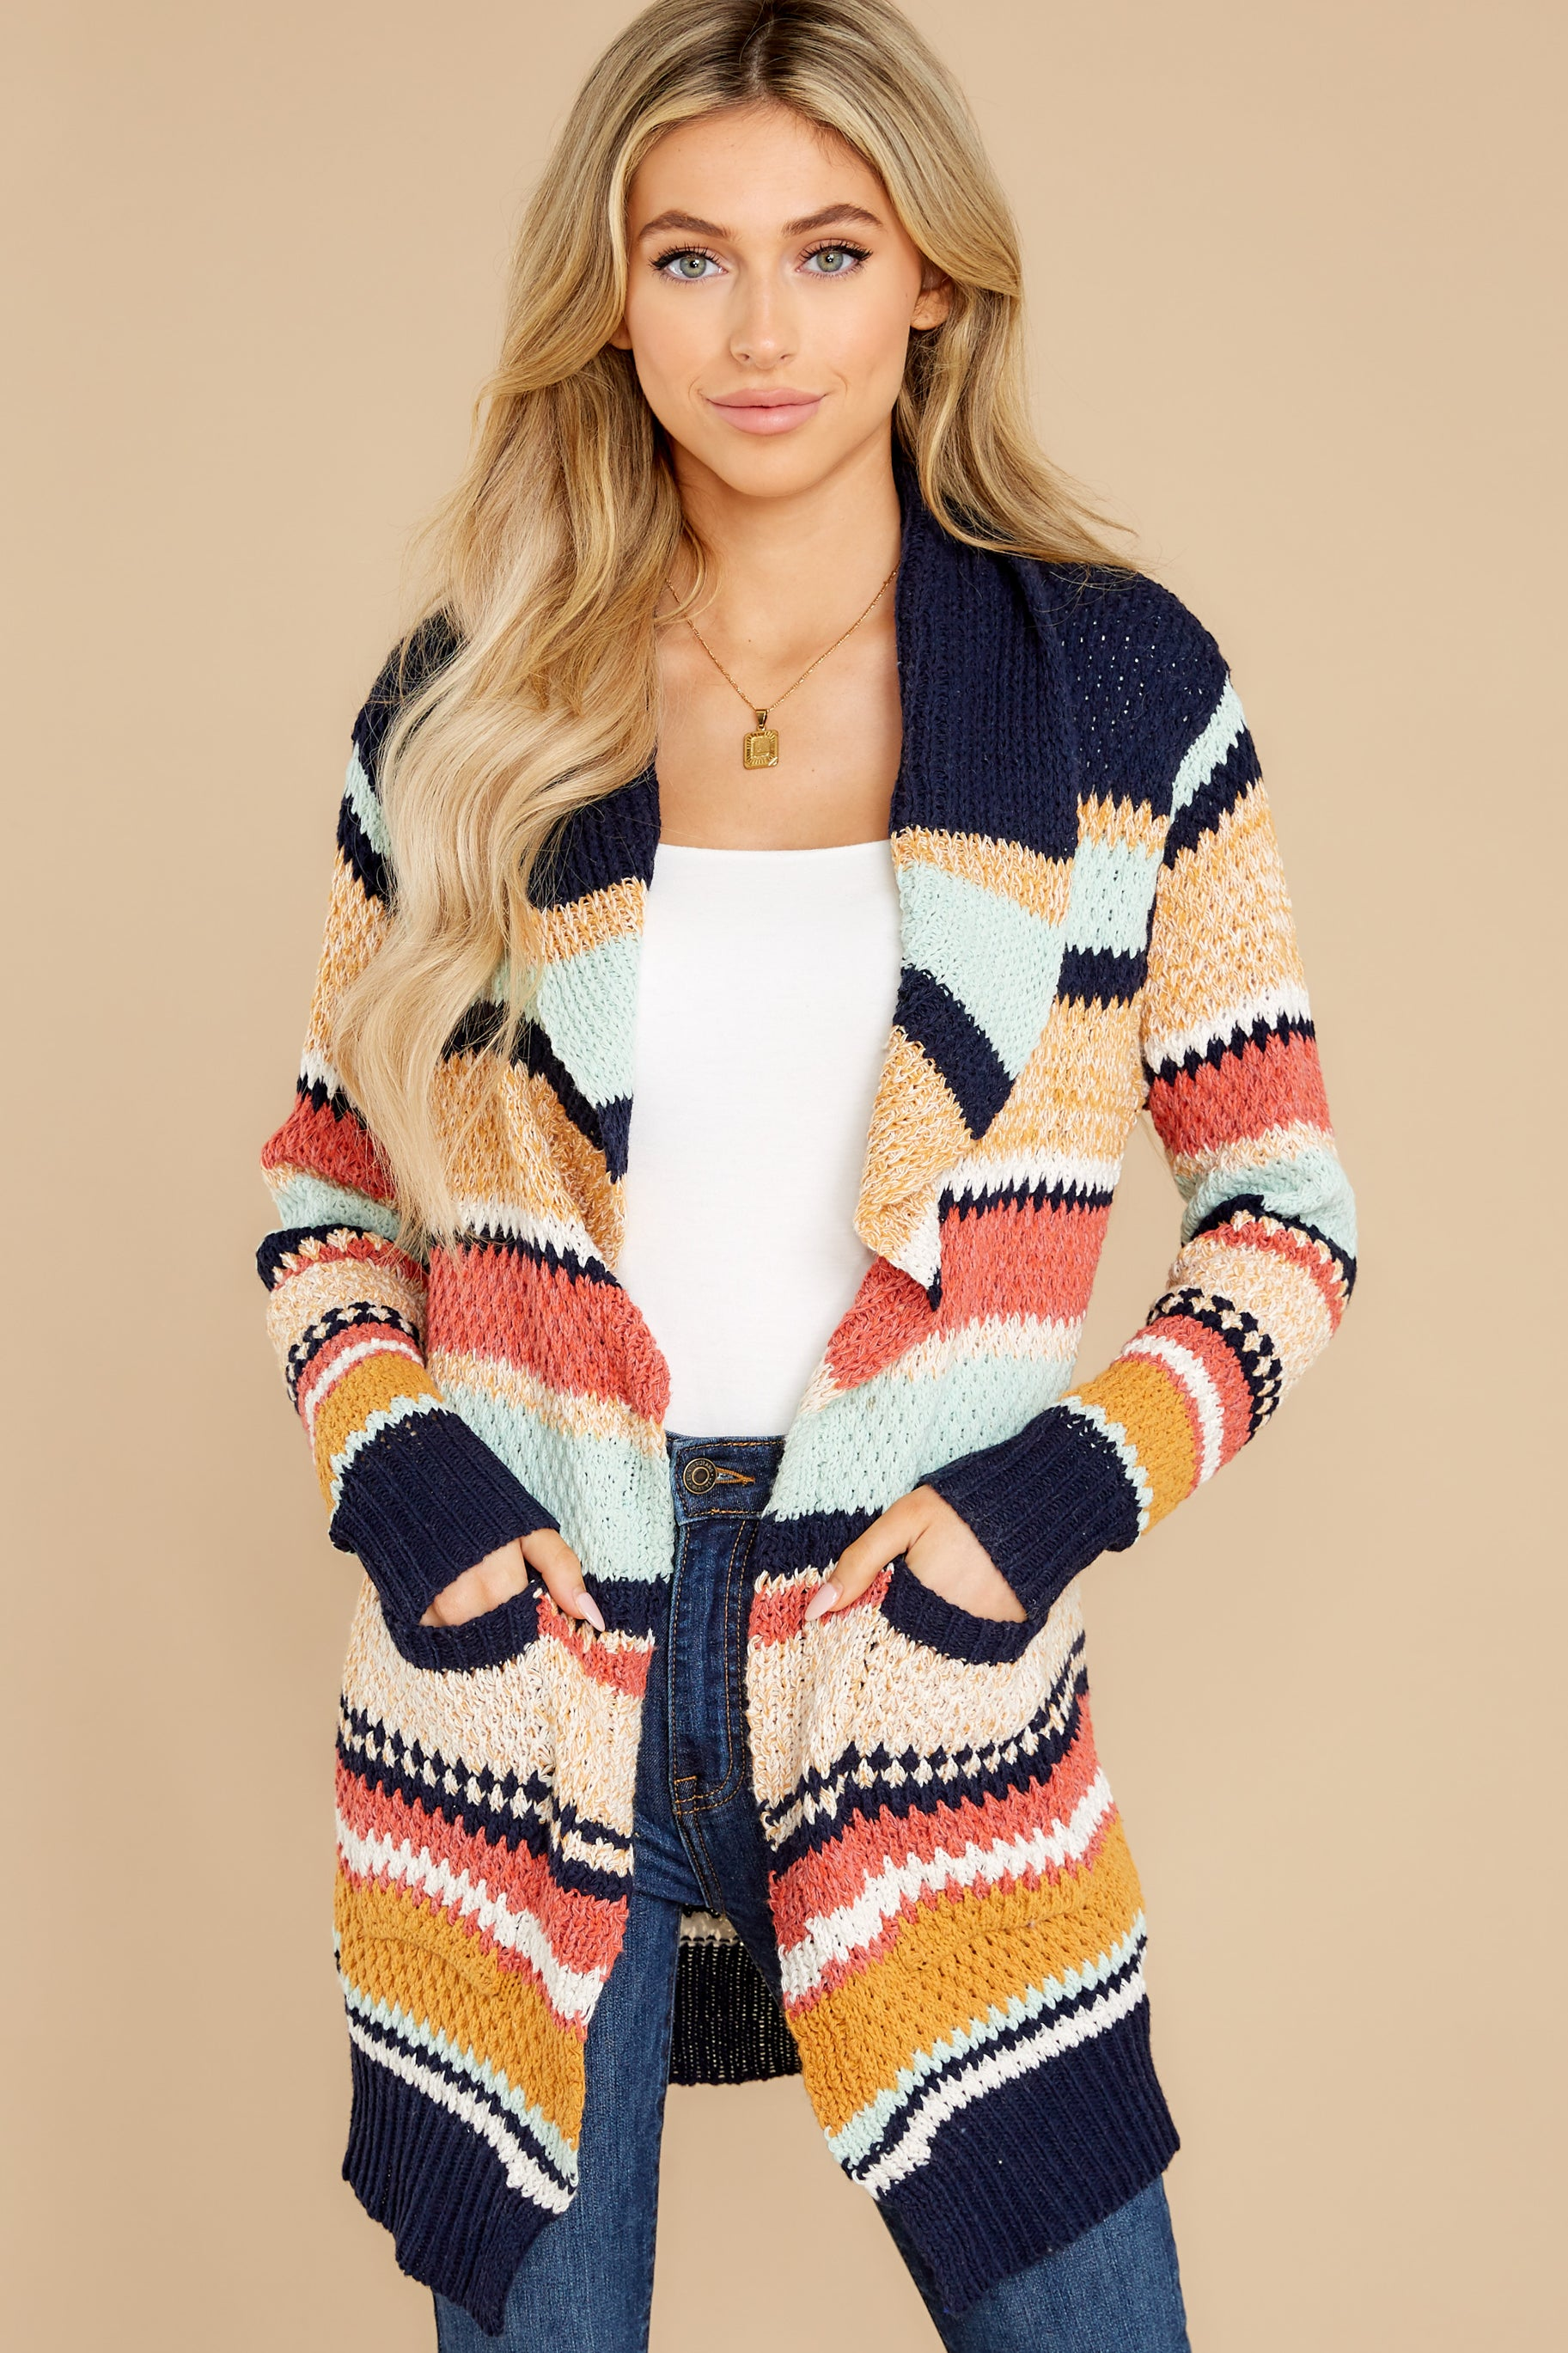 8 Denali Sunset Navy Multi Knit Cardigan at reddress.com